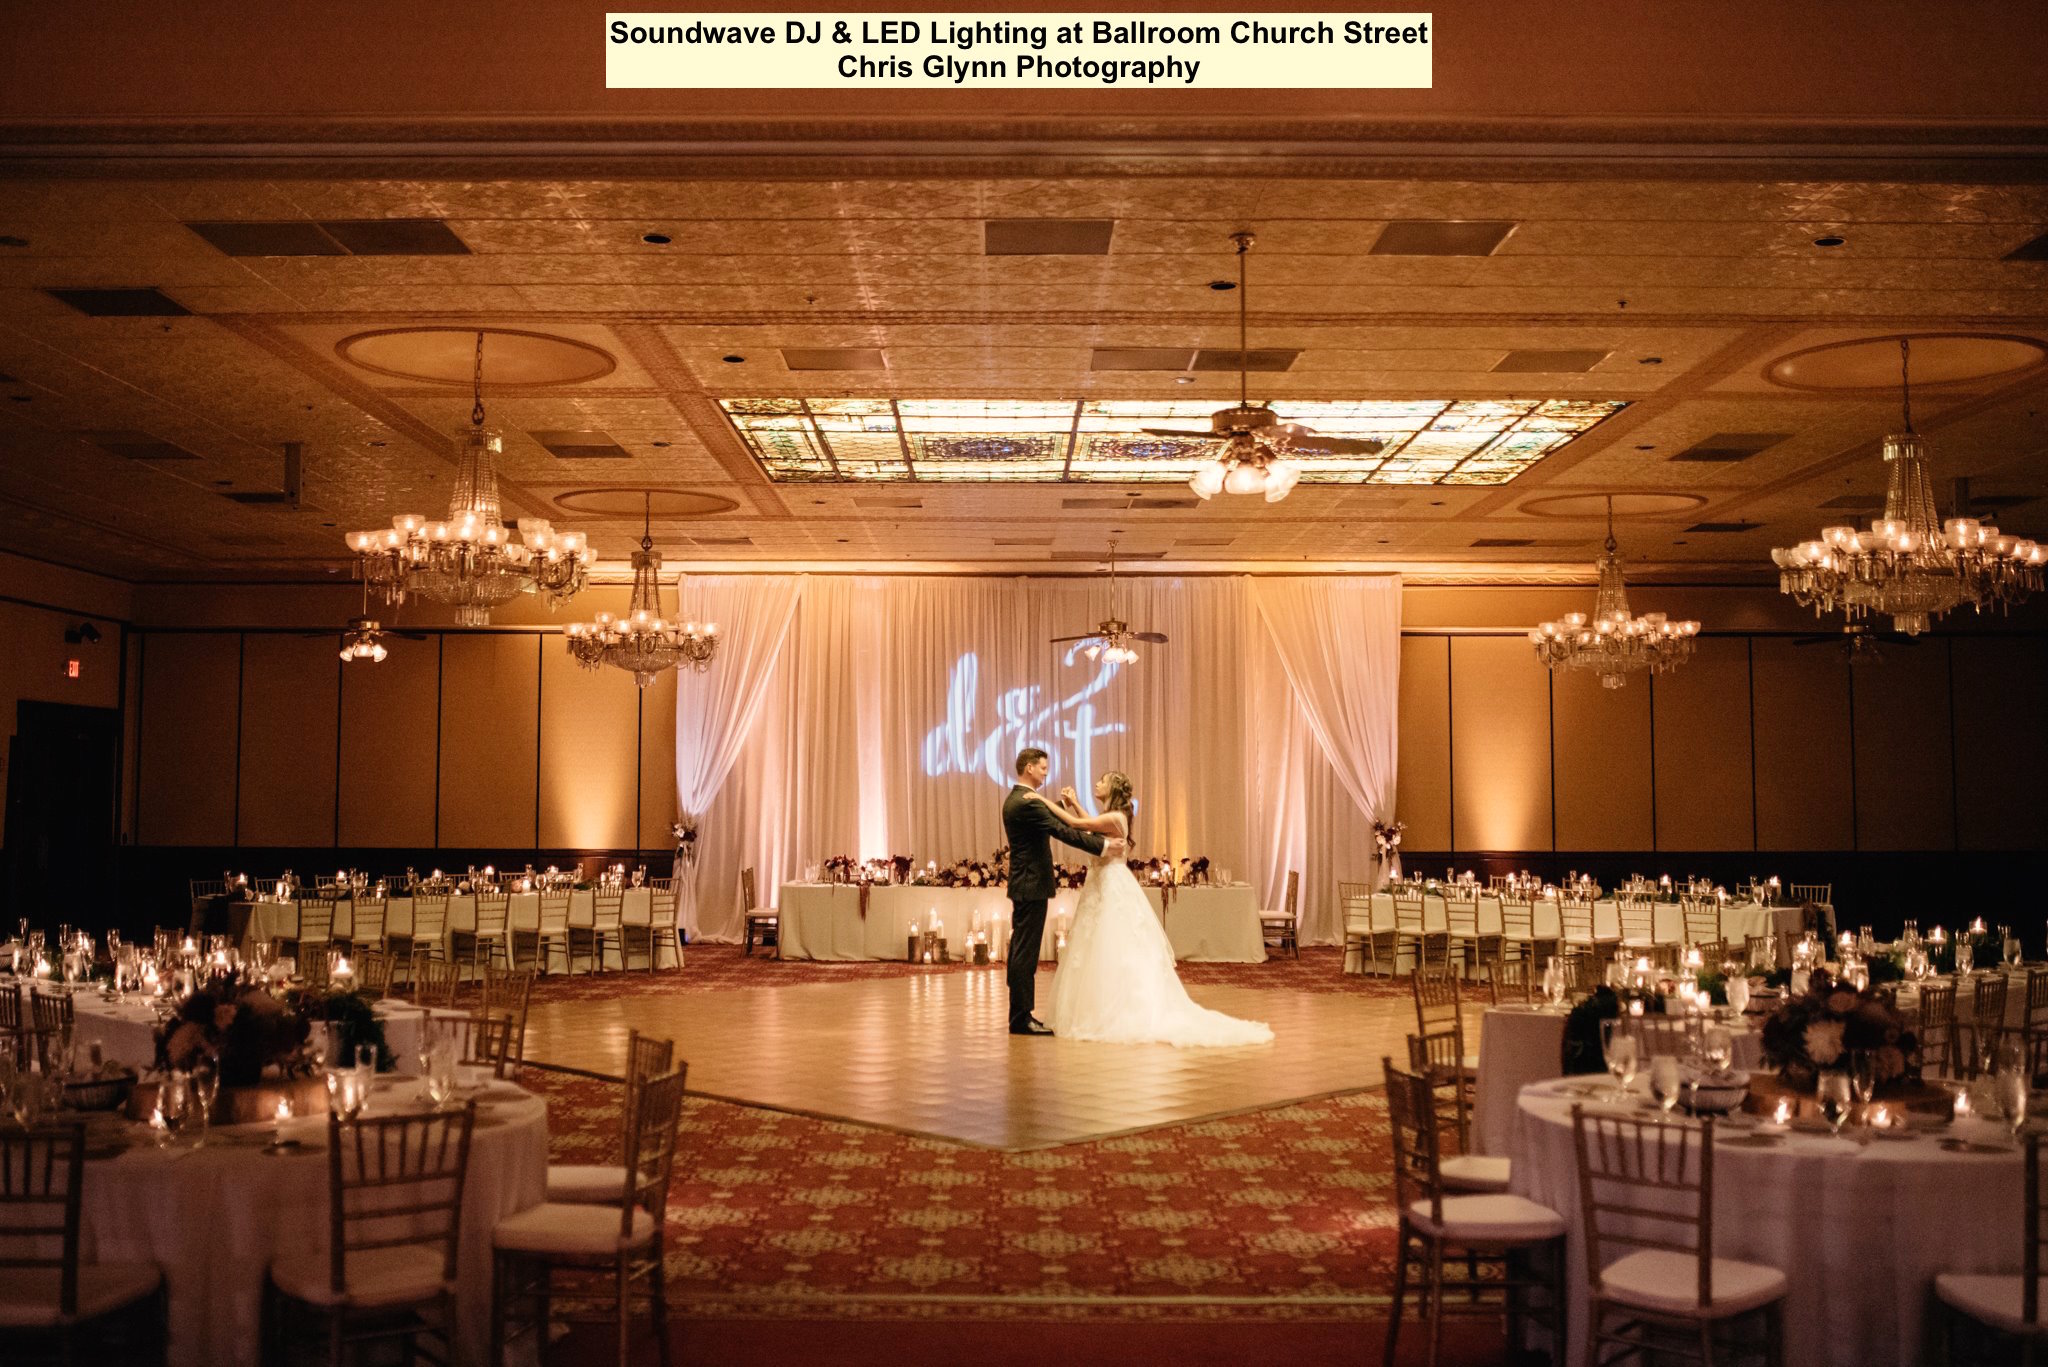 sooundwave entertainment - ballroom church street - orlando wedding dis - led lighting design - orlando wedding venues